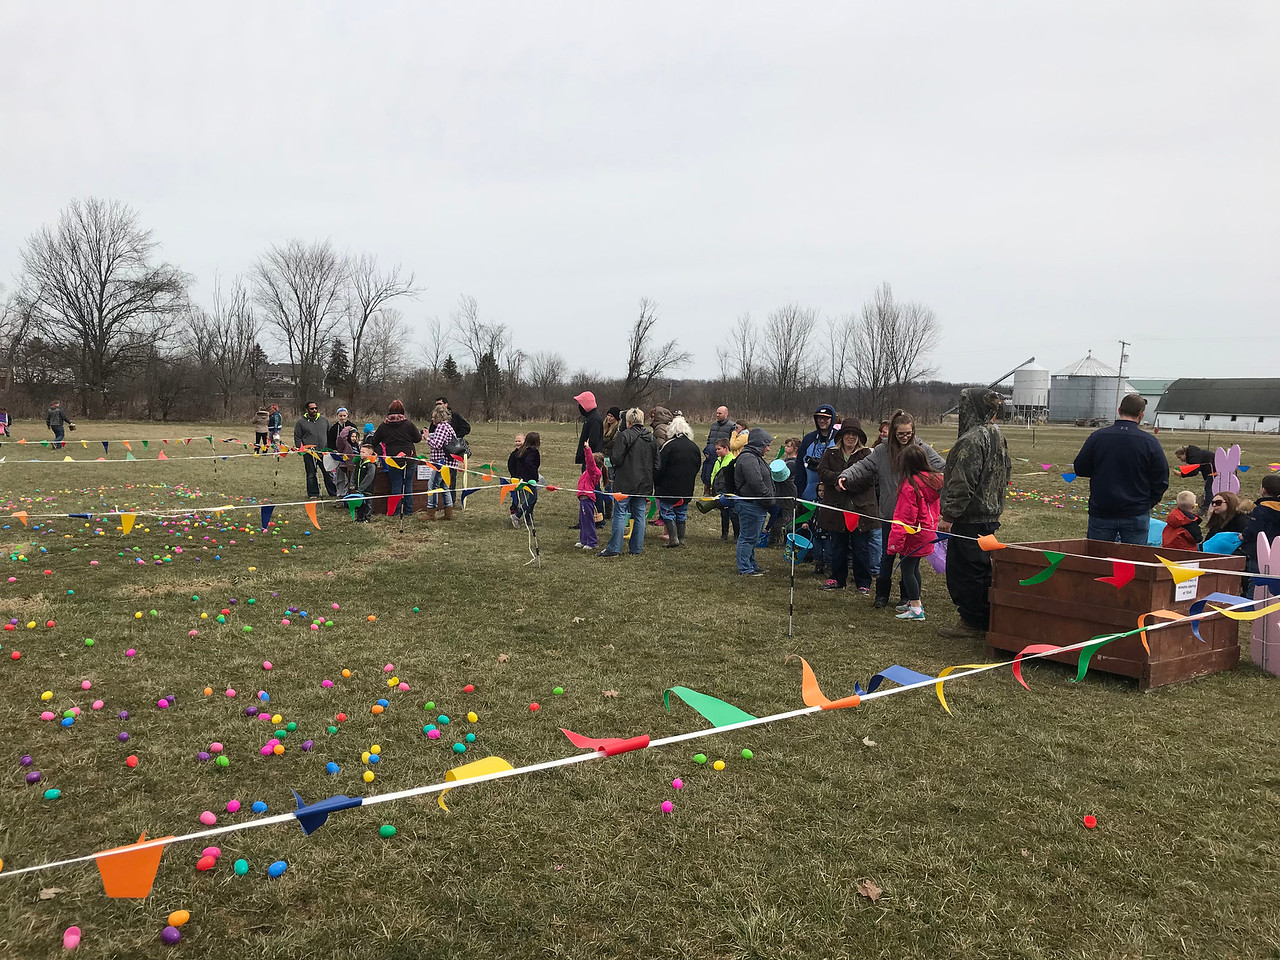 NATHAN HAVENNER / GAZETTE  Kids line up for an Easter egg hunt Saturday at Beriswill Farms, 2200 Station Road, Liverpool Township.